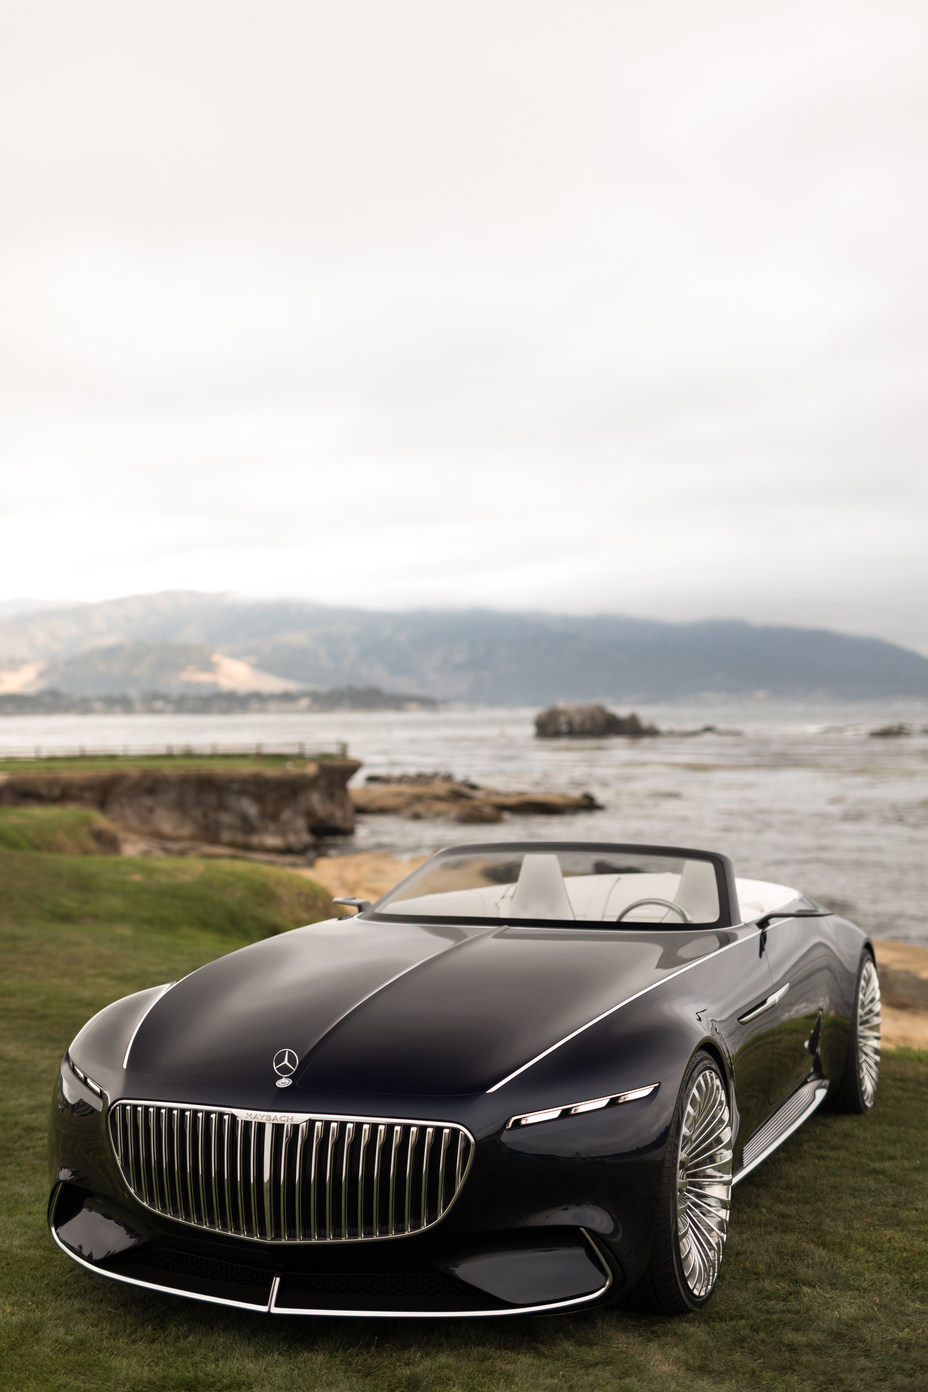 Vision Mercedes-Maybach 6 Cabriolet front angle